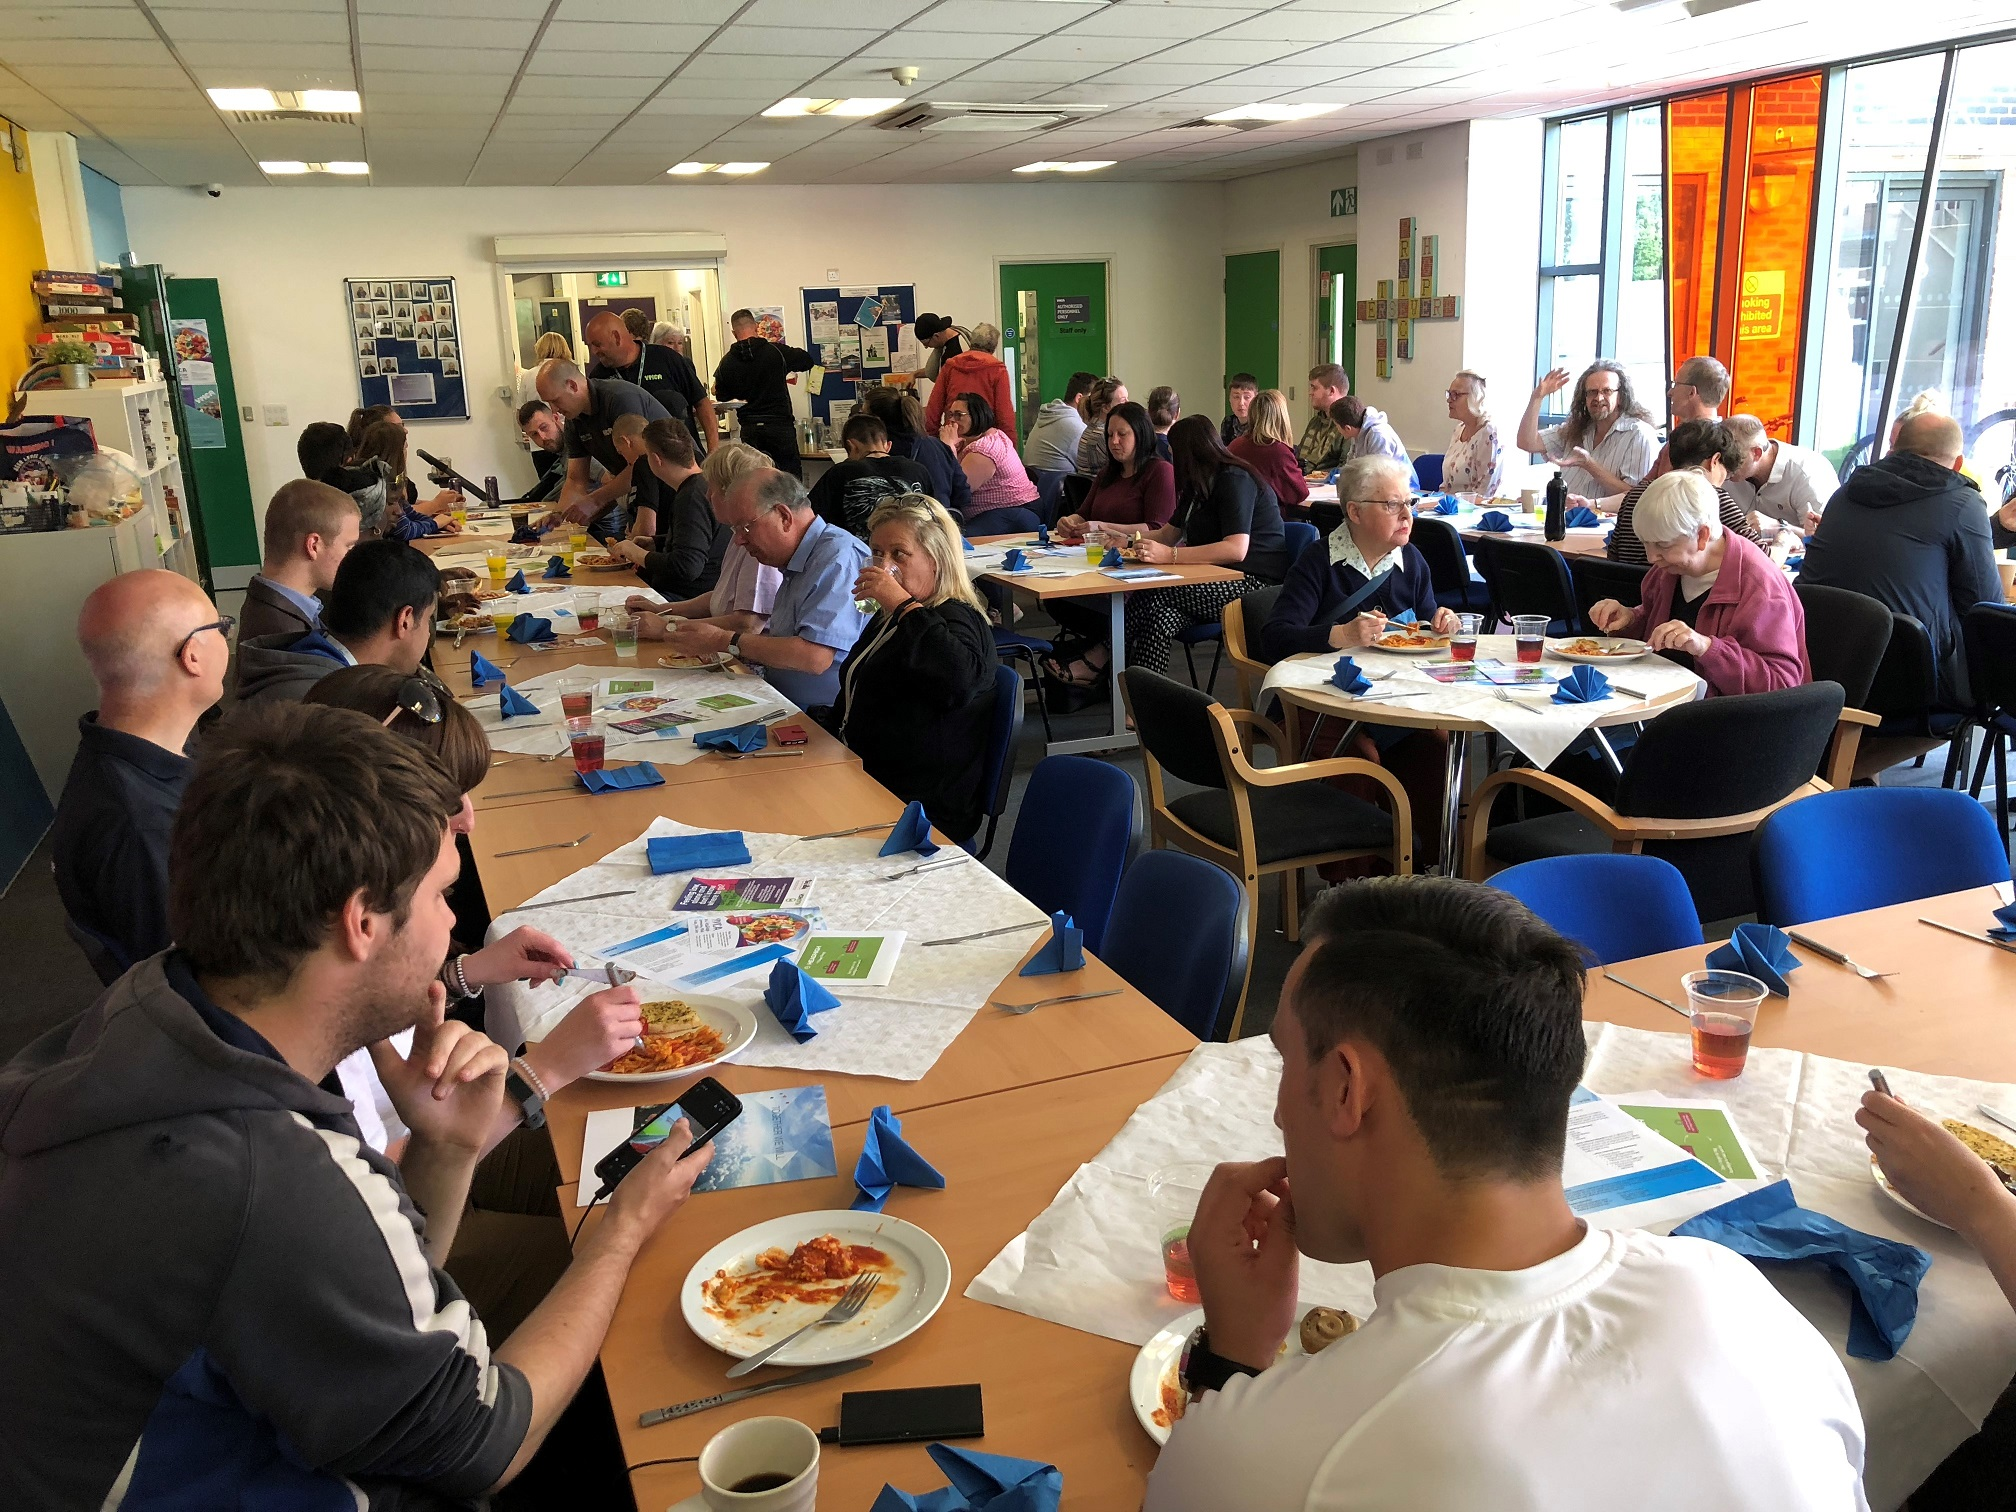 Staff from Lubrizol, in Hazelwood, took part in the YMCA Derbyshire Community Meal. Penguin PR: public relations, media and communications